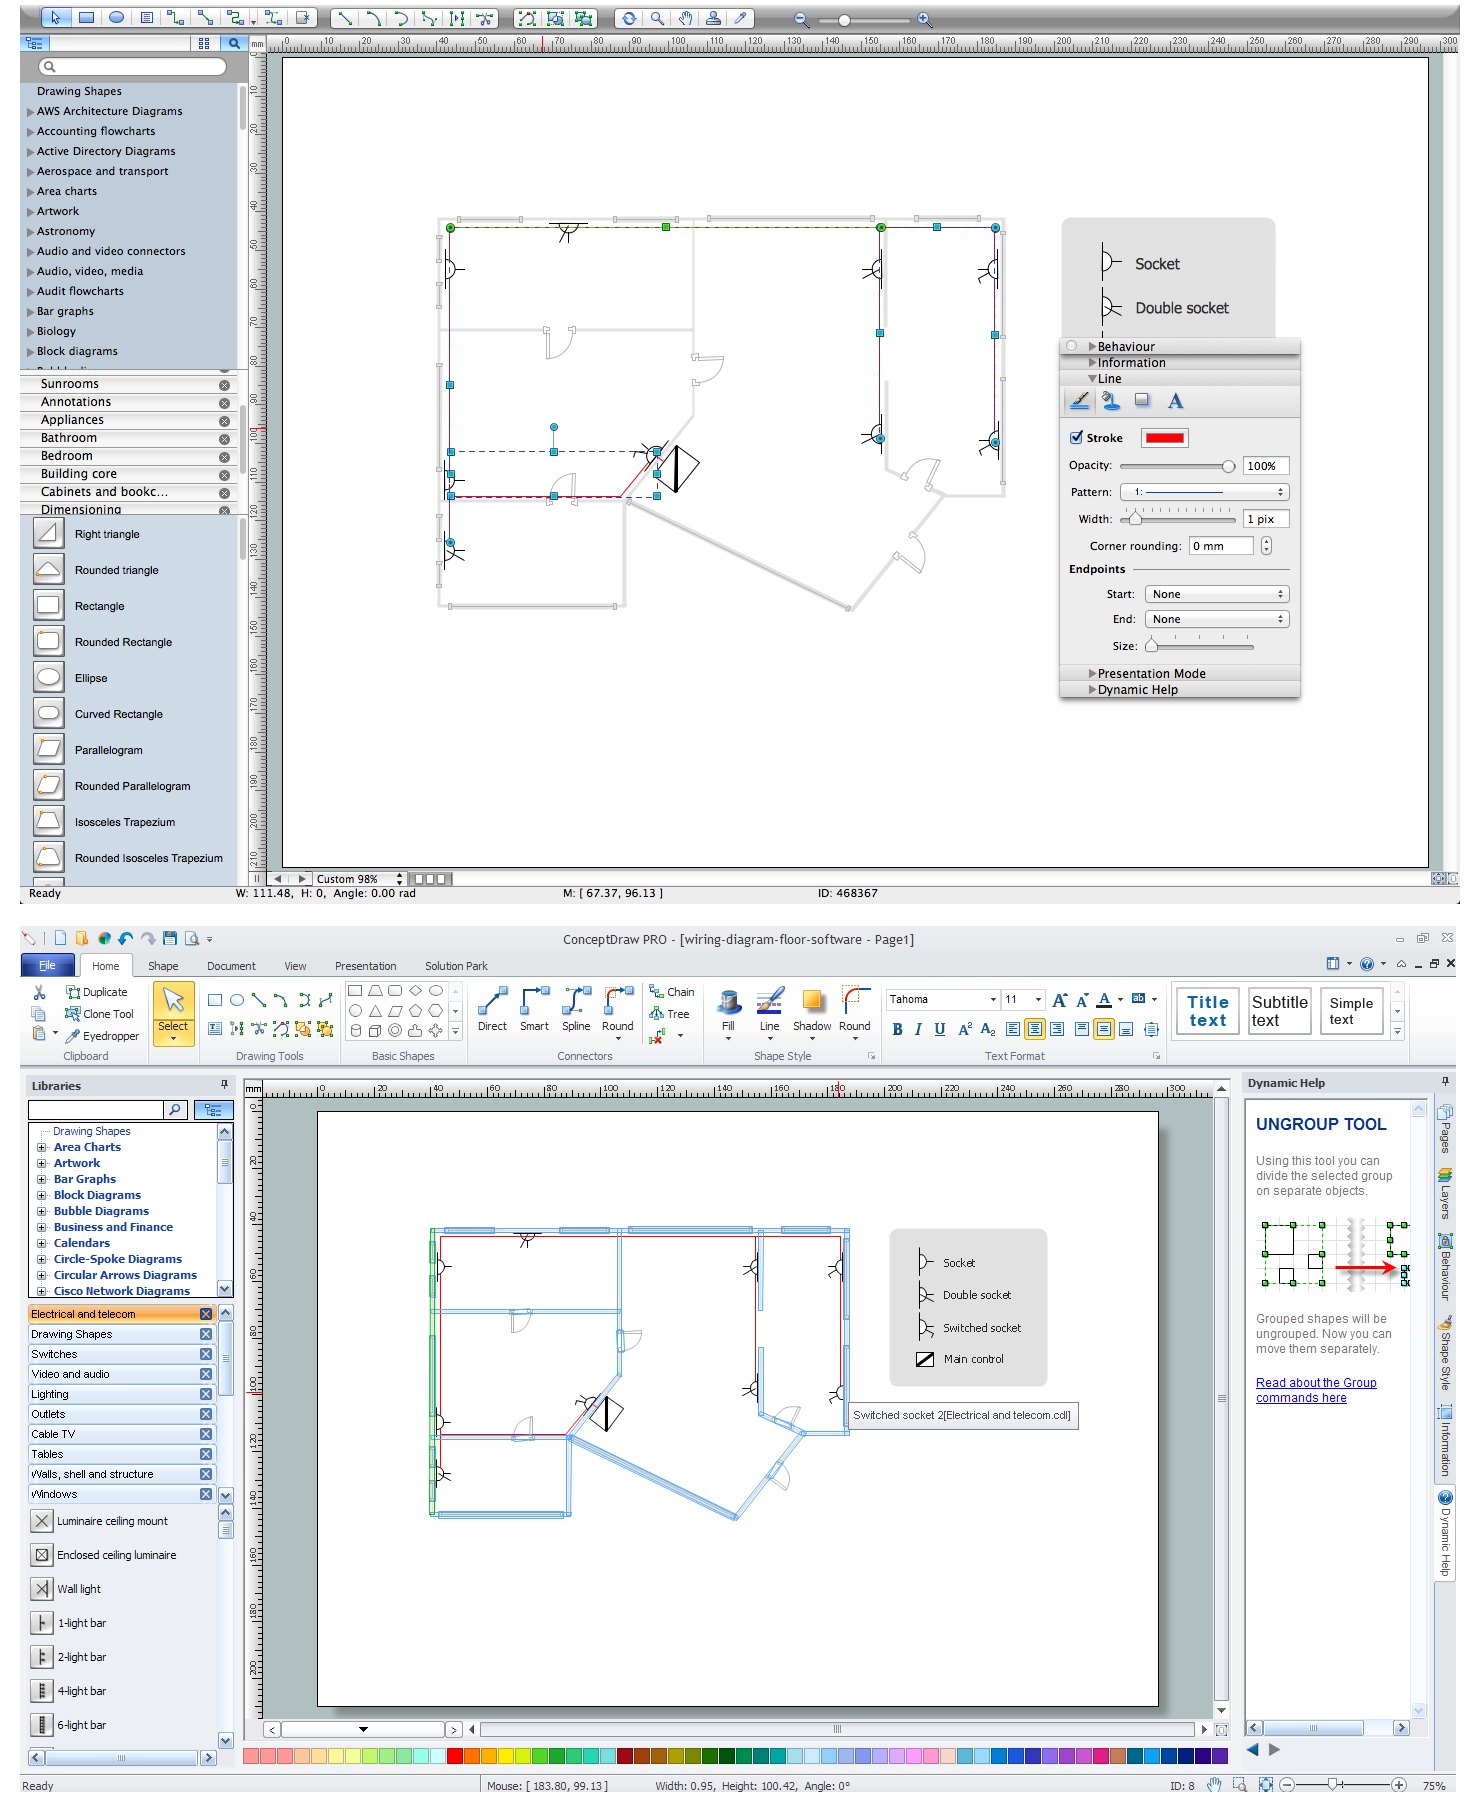 Wiring Diagram Floor Software wiring diagram with conceptdraw pro program to make wiring diagrams at suagrazia.org